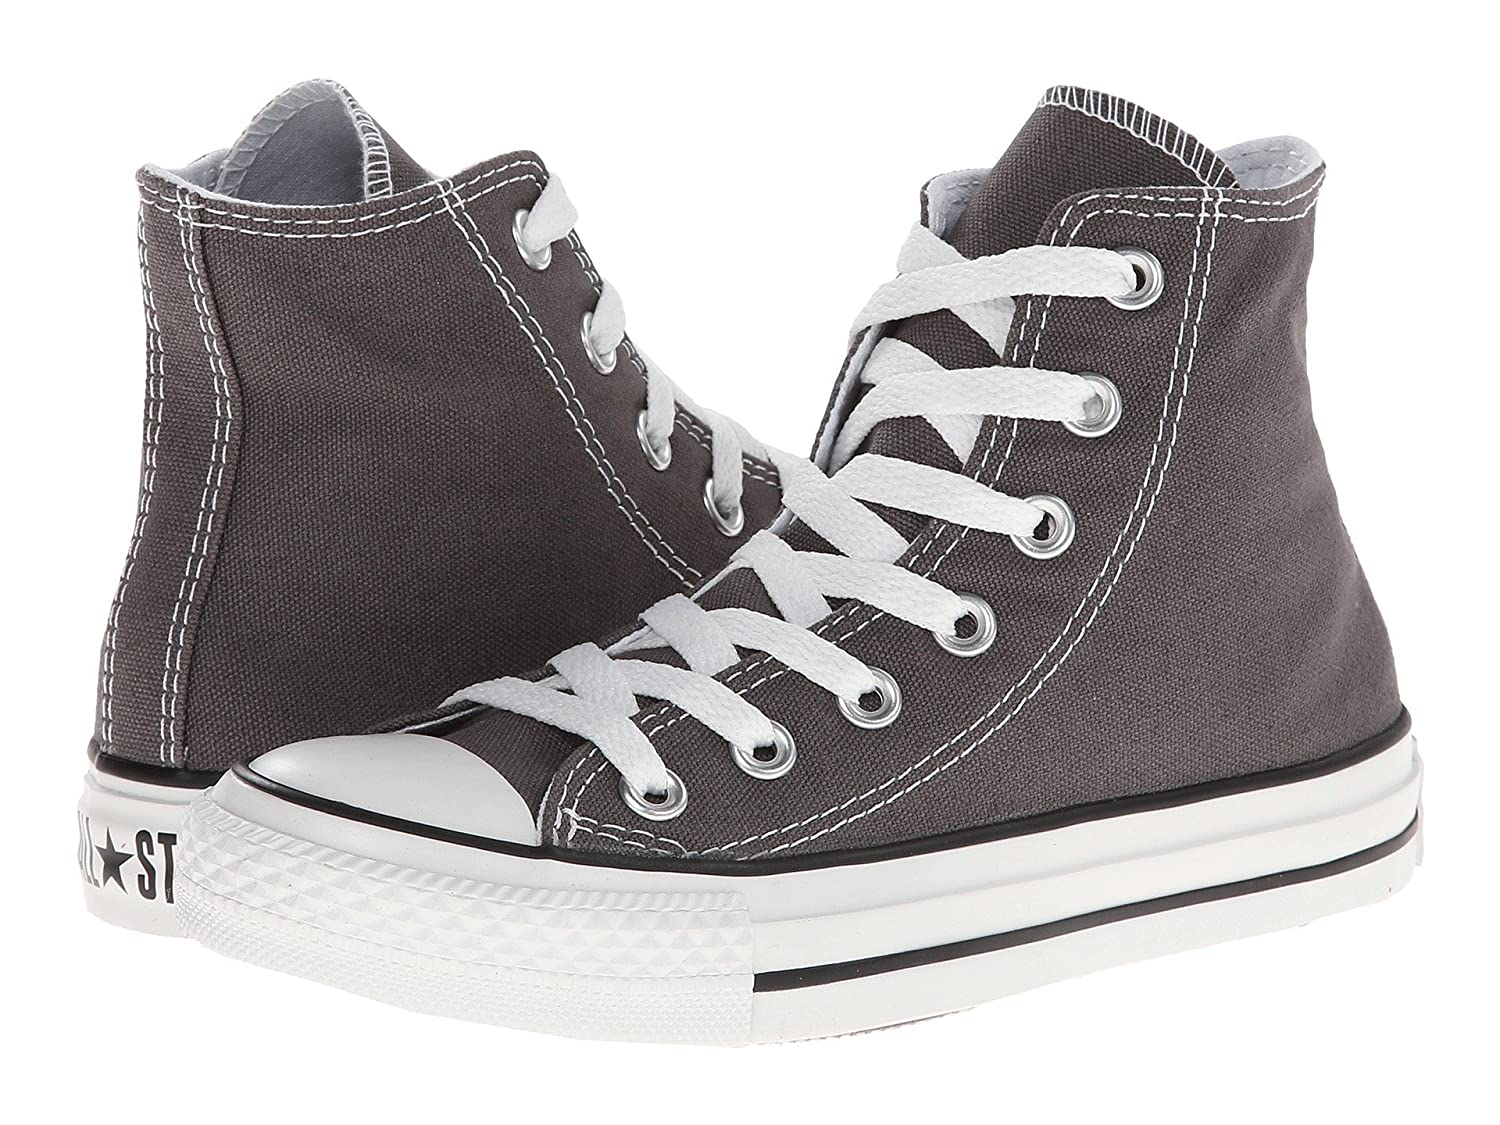 Converse Unisex Chuck Taylor All Star Hi Top US Sneaker B077PQGKFW 10 B(M) US Top Women / 8 D(M) US Men|Charcoal aa9ce0